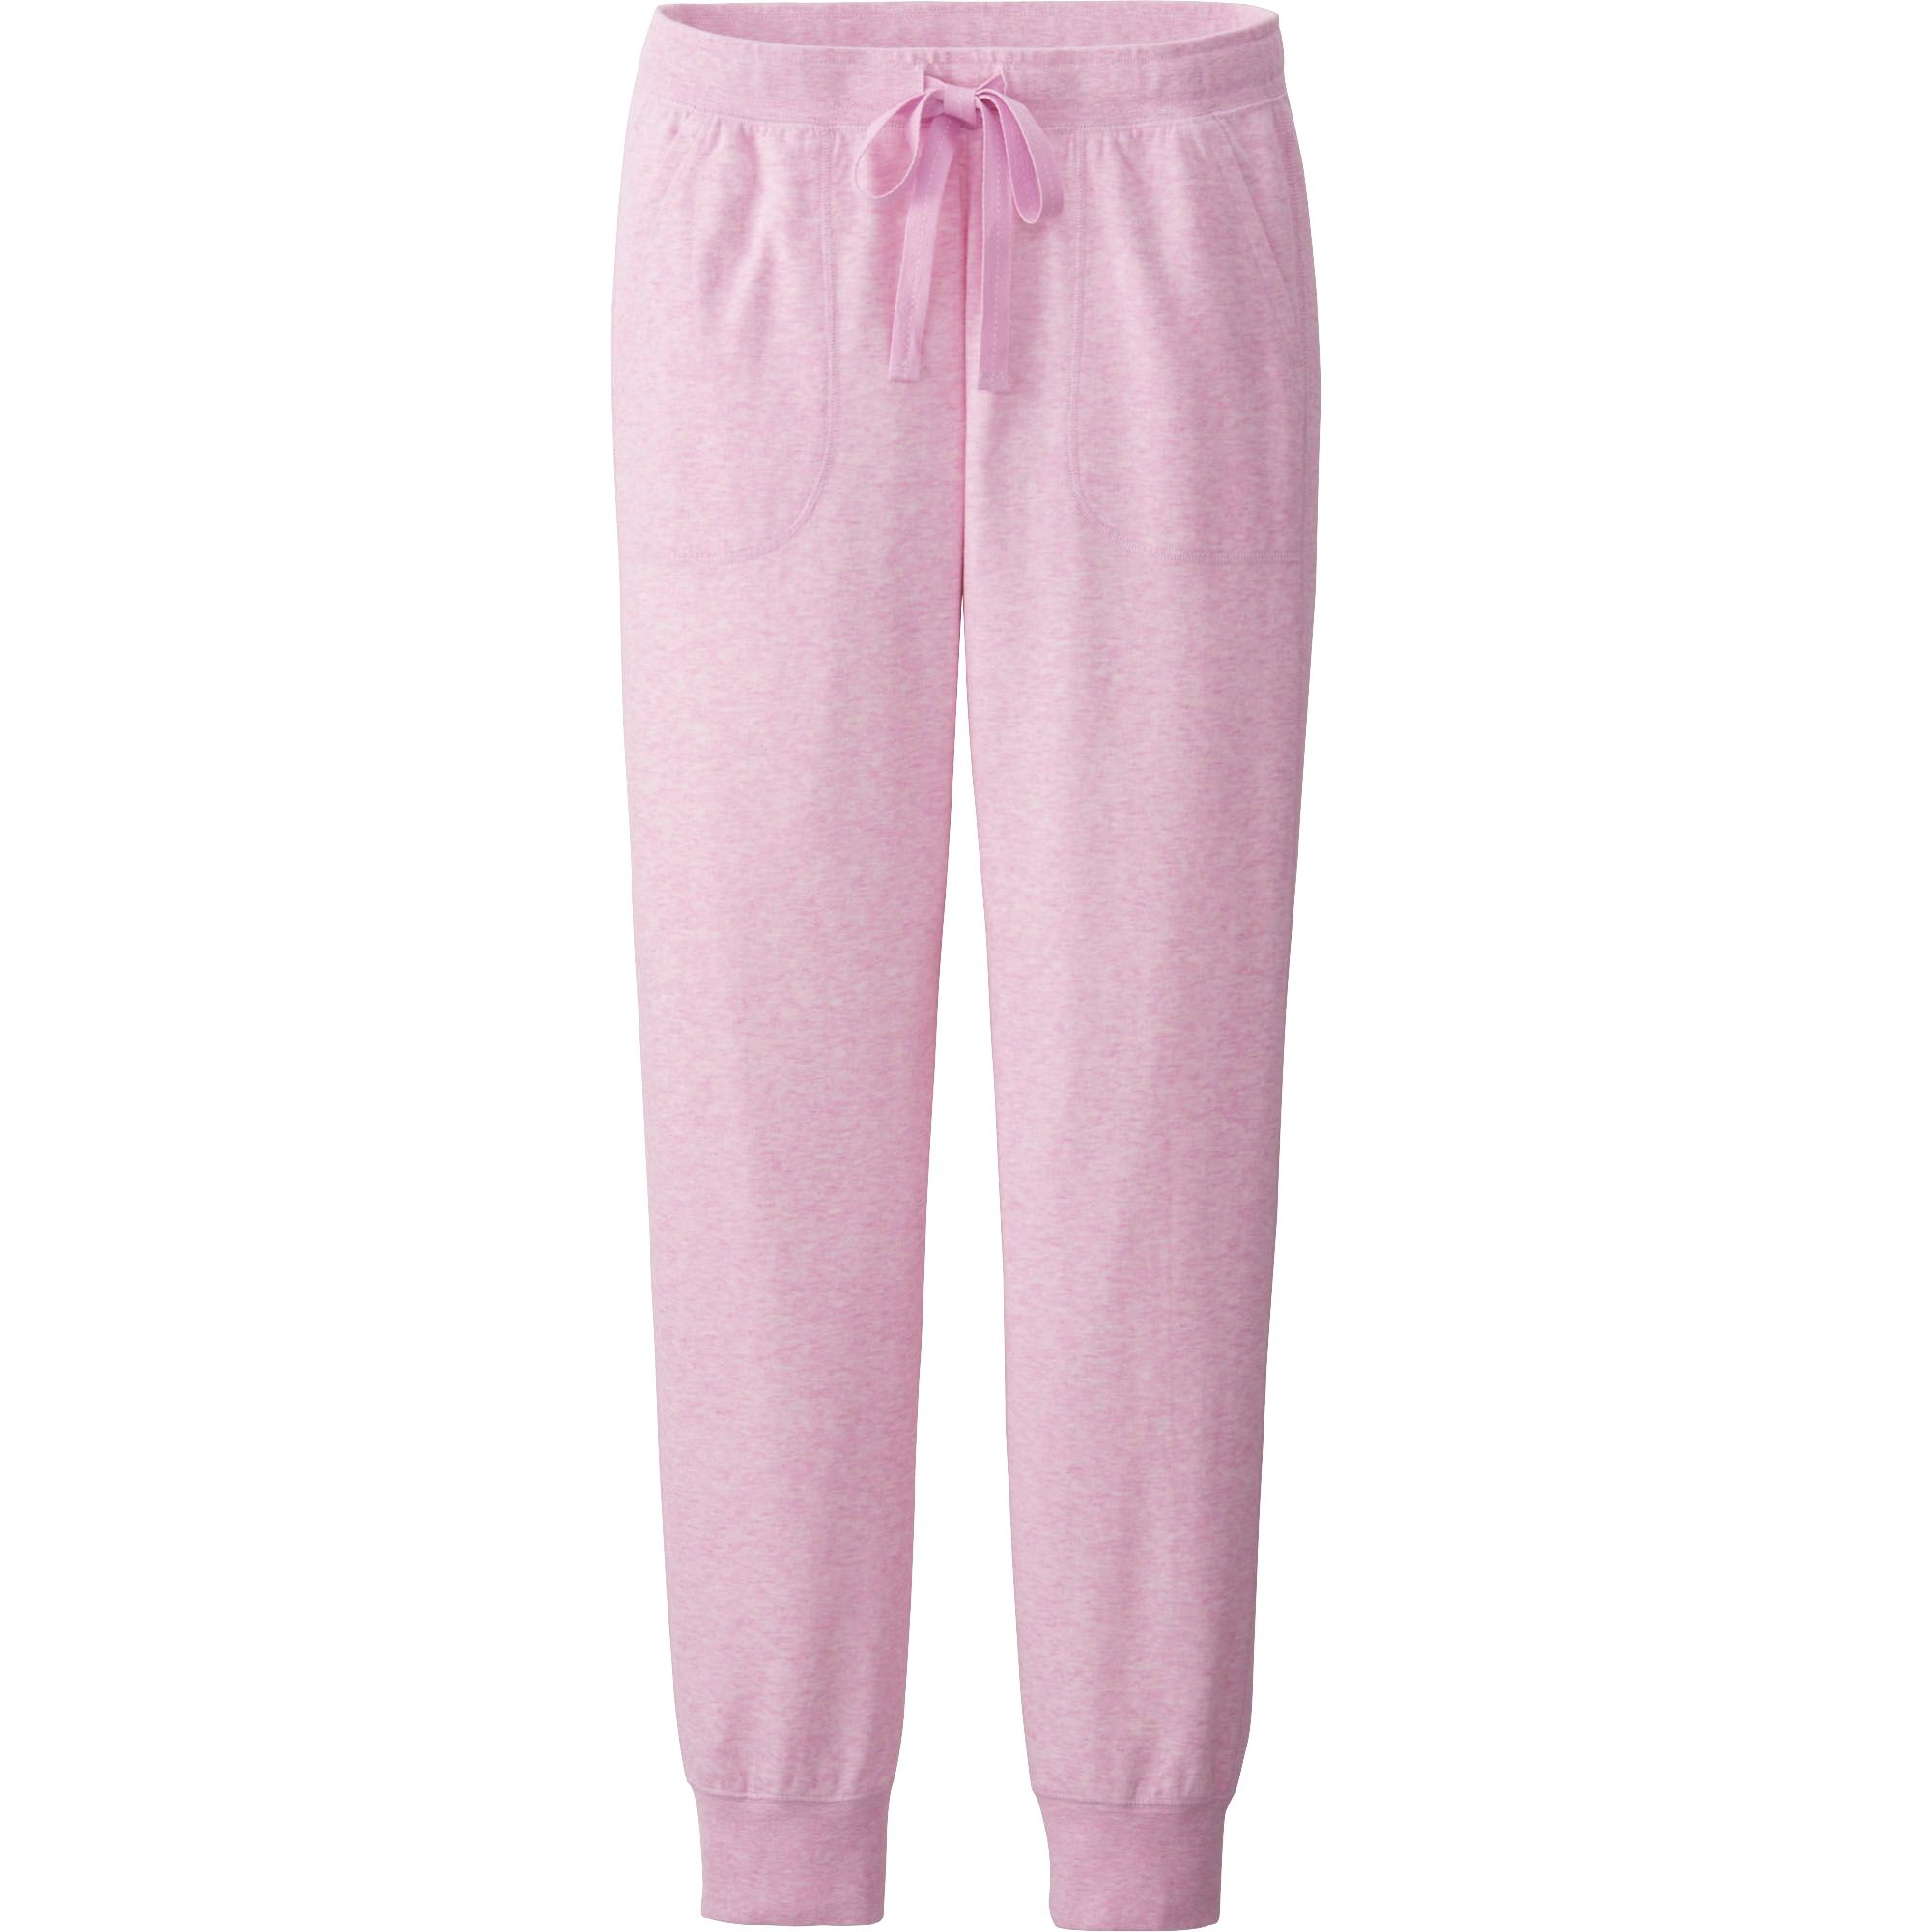 Shop our Collection of Women's Pink Pants at gravitybox.ga for the Latest Designer Brands & Styles. FREE SHIPPING AVAILABLE!